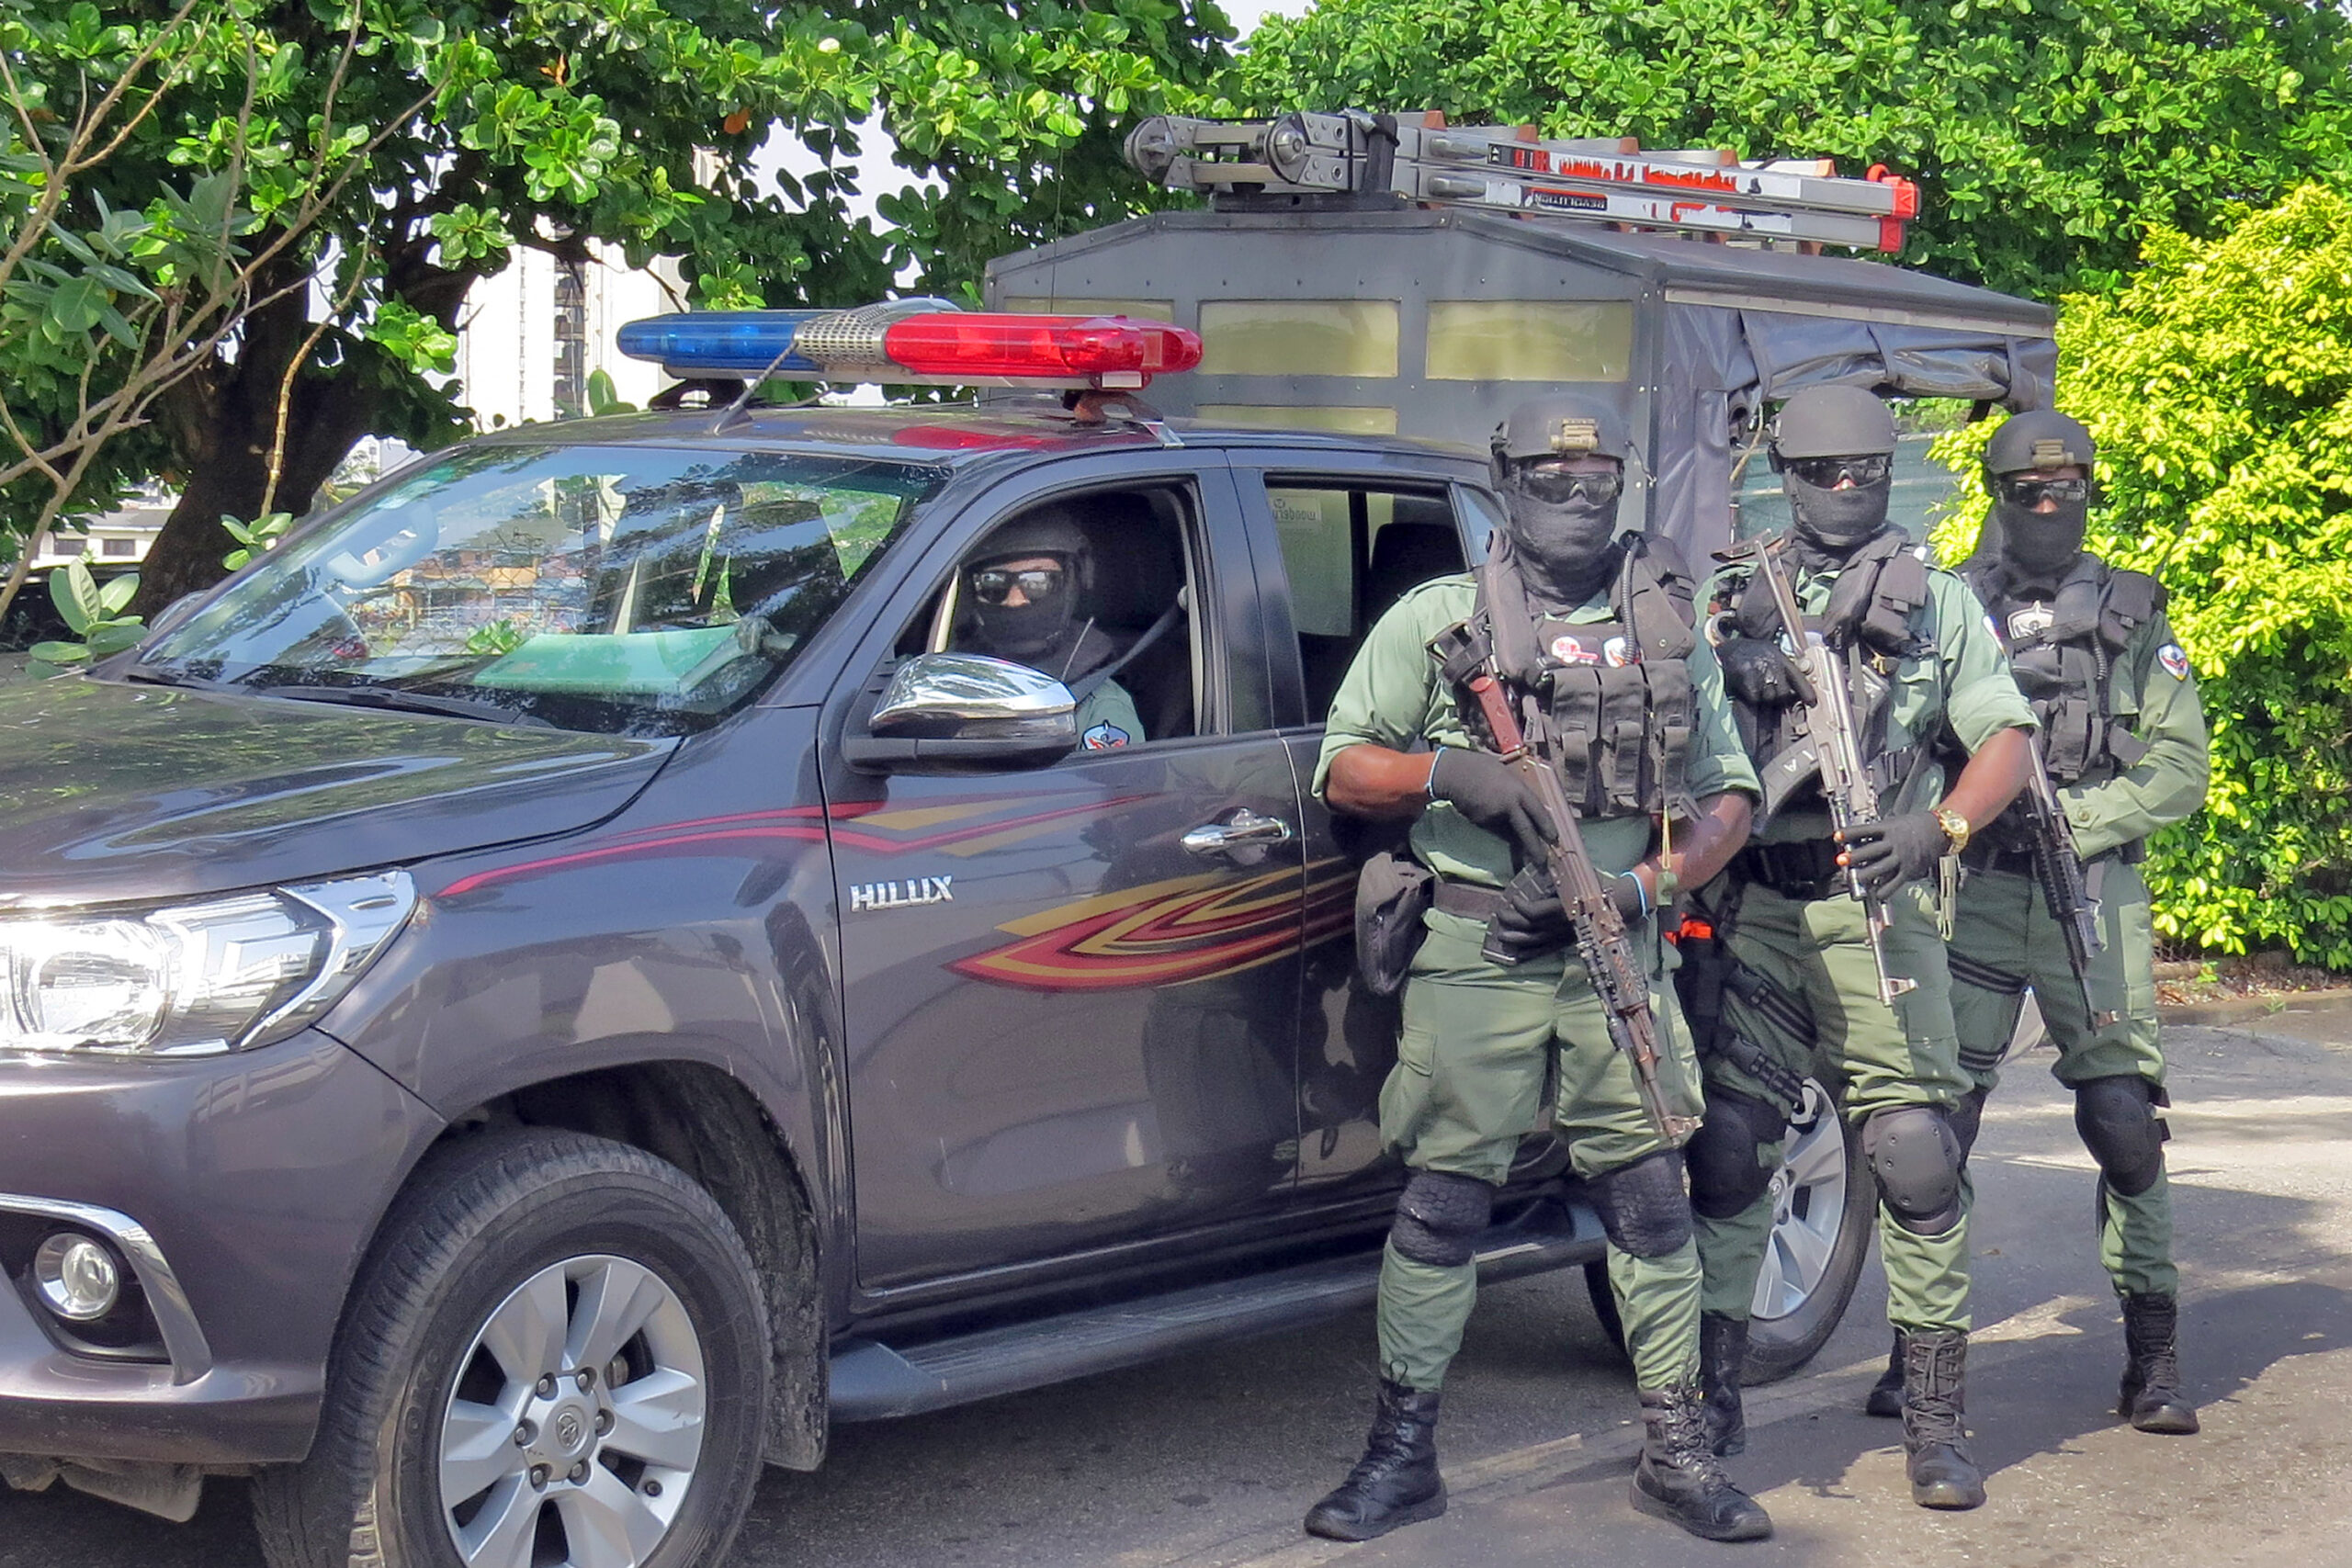 Nigerian police assigned to protect U.S. diplomatic facilities and personnel train with one of their vehicles in city of Lagos in November 2020. The police are part of a Special Program for Embassy Augmentation Response (SPEAR) team. SPEAR teams are quick-response forces trained and funded by the Diplomatic Security Service's Office of Antiterrorism Assistance (ATA). (Department of State photo)